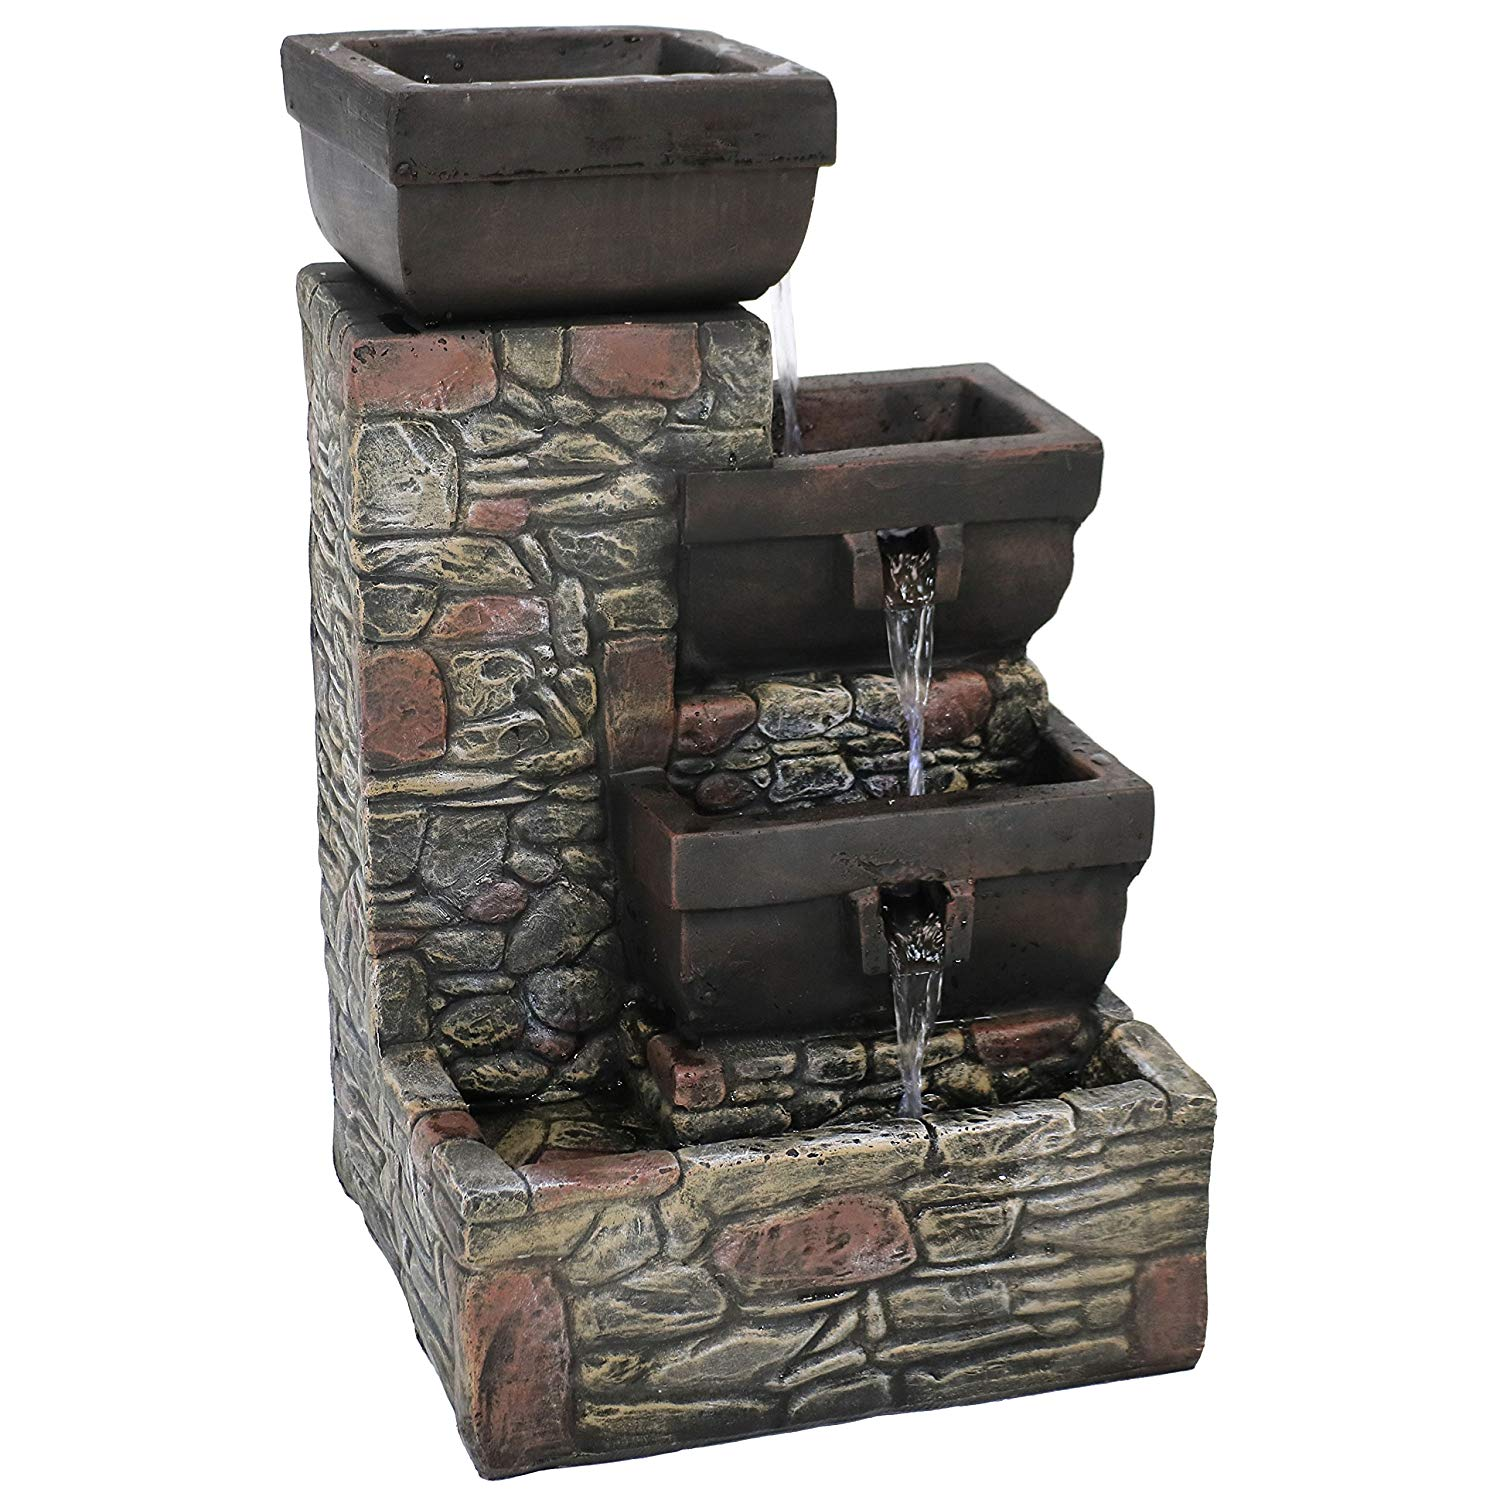 Sunnydaze 4-Tier Cascading Outdoor Waterfall Fountain with LED Lights, Patio and Garden Water Feature, Stacked Stone Square Bowls, 22-Inch Tall